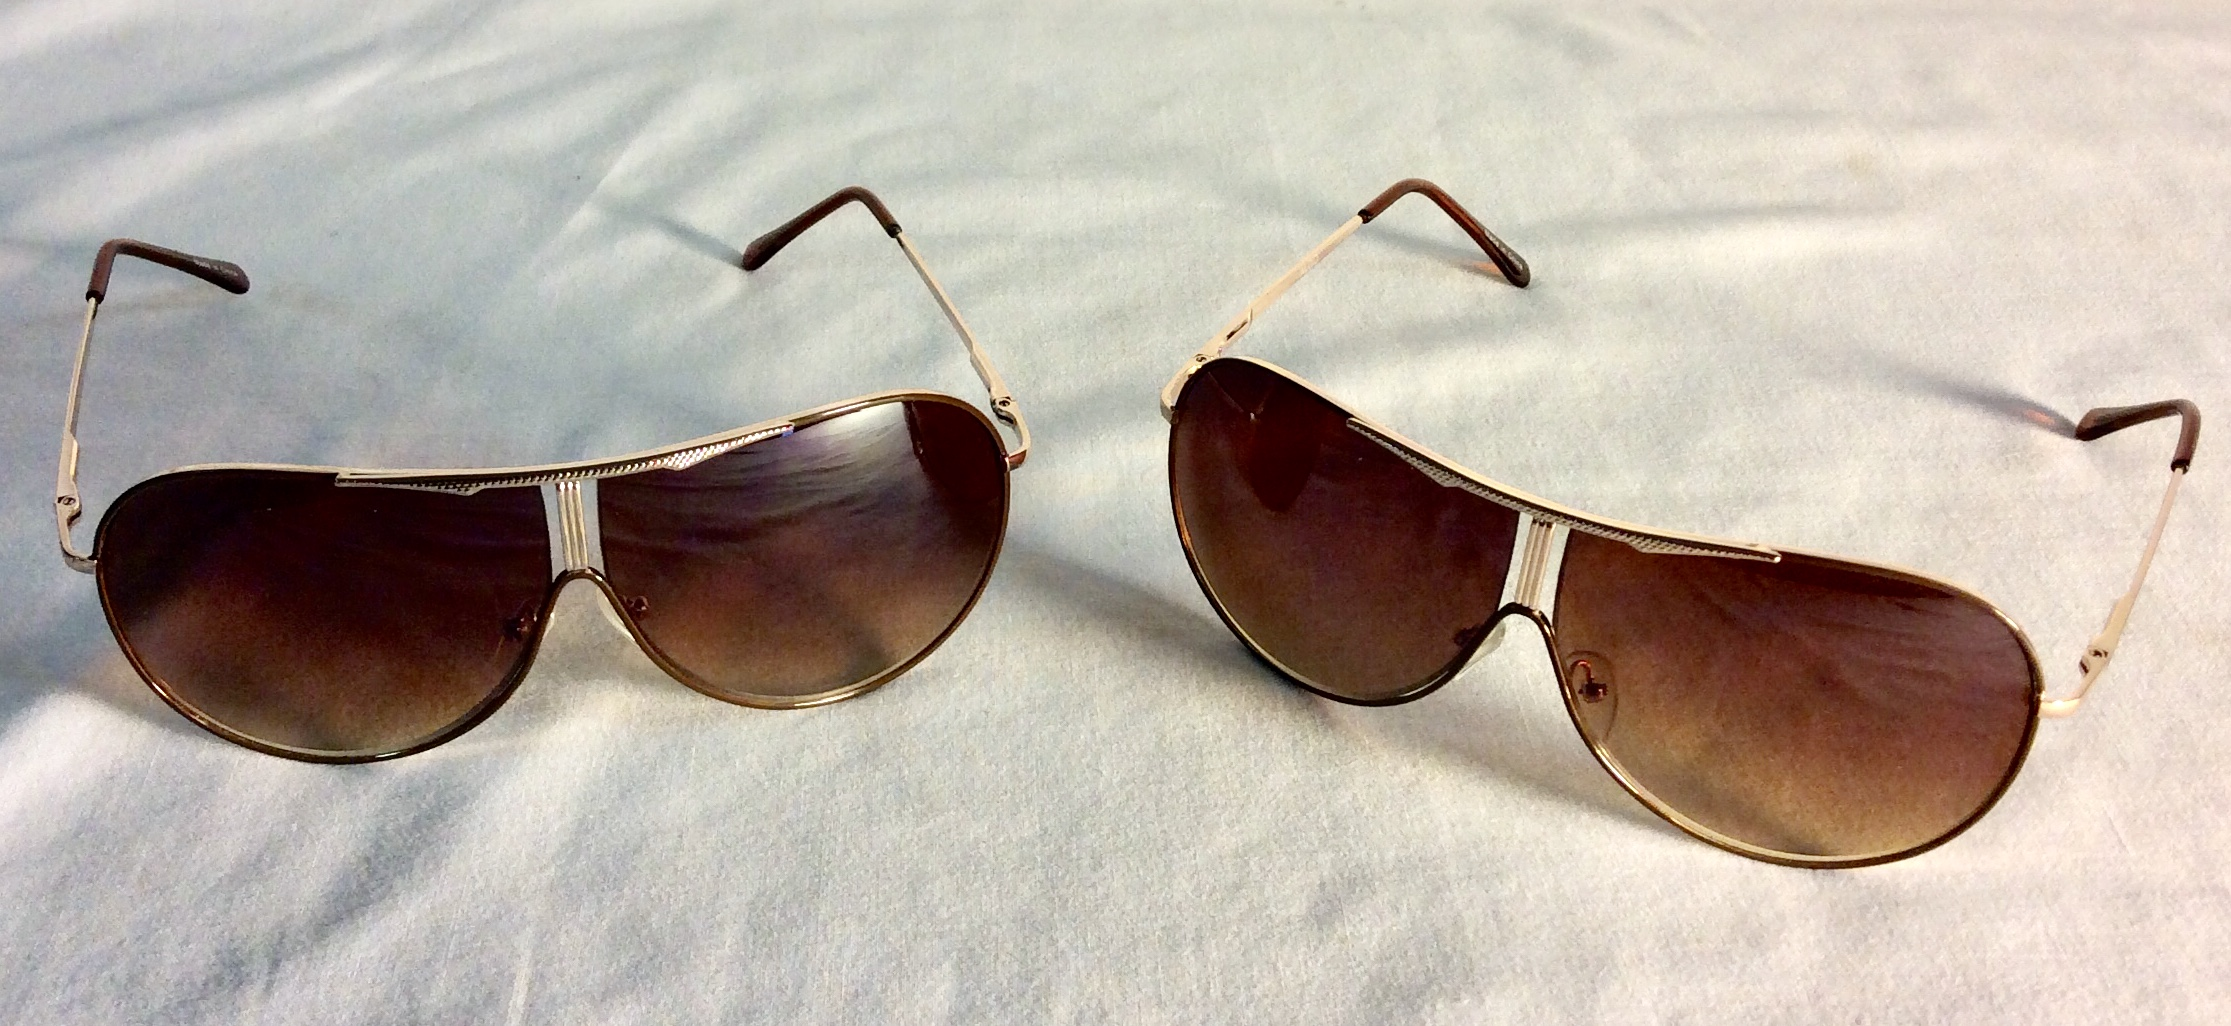 Bronze tinted sunglasses